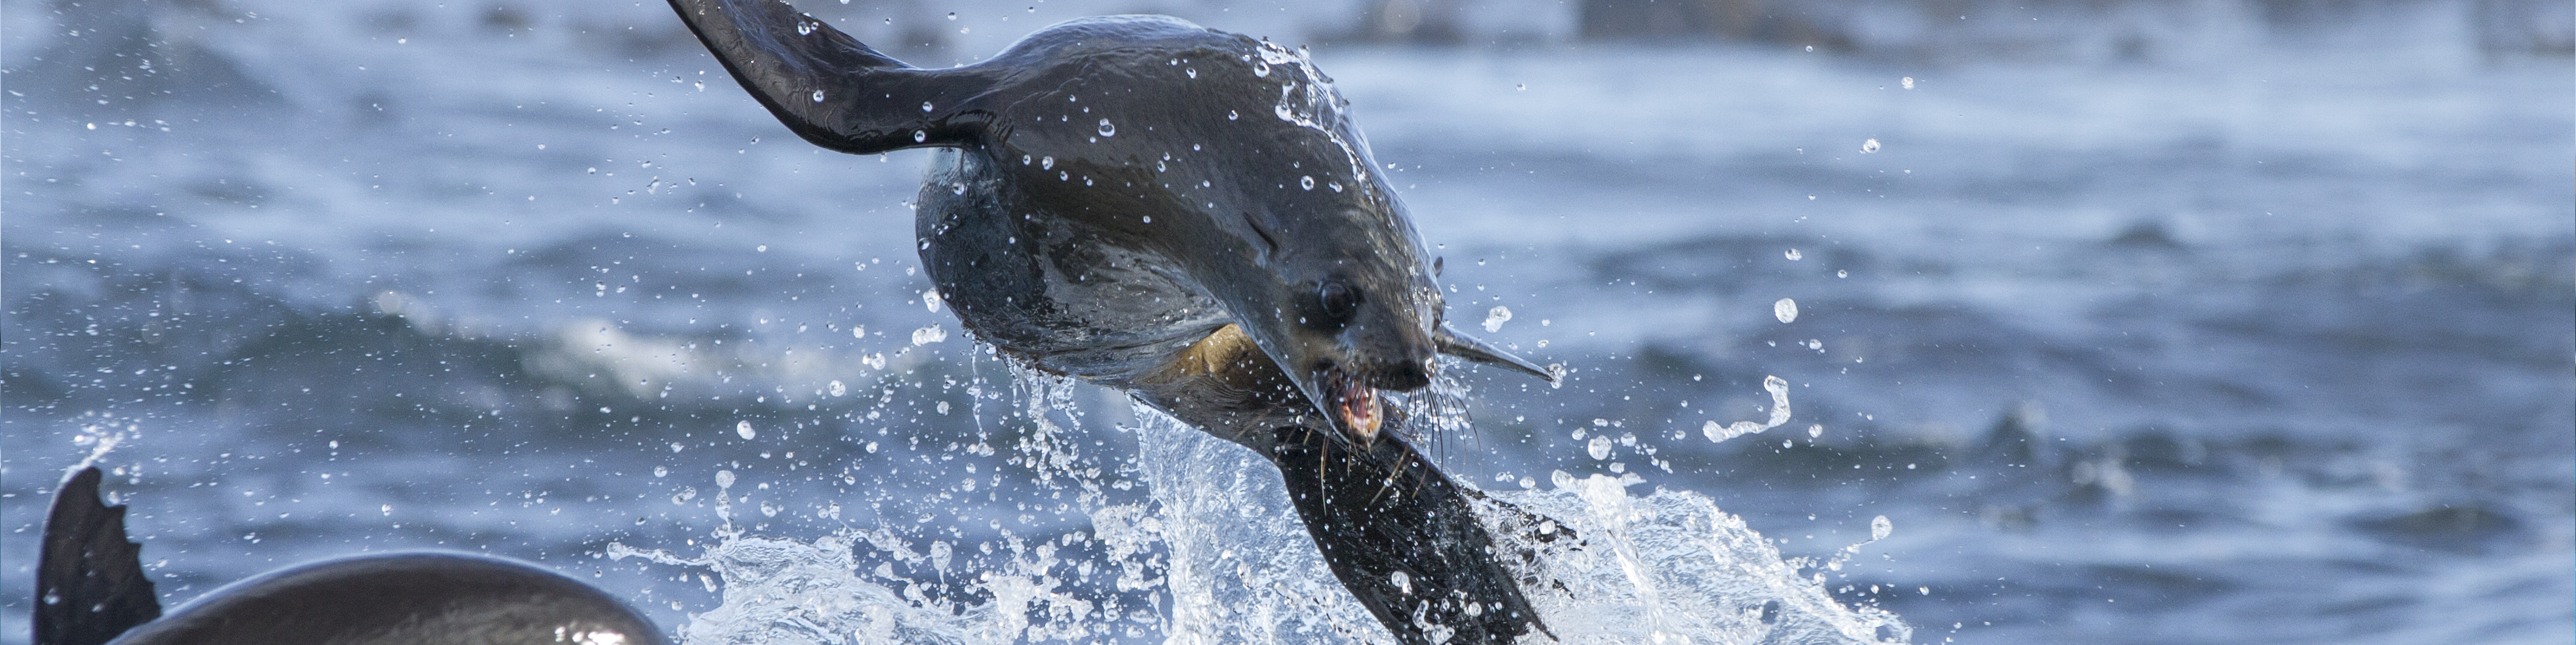 Cape Fur Seal Jumping Animal Ocean